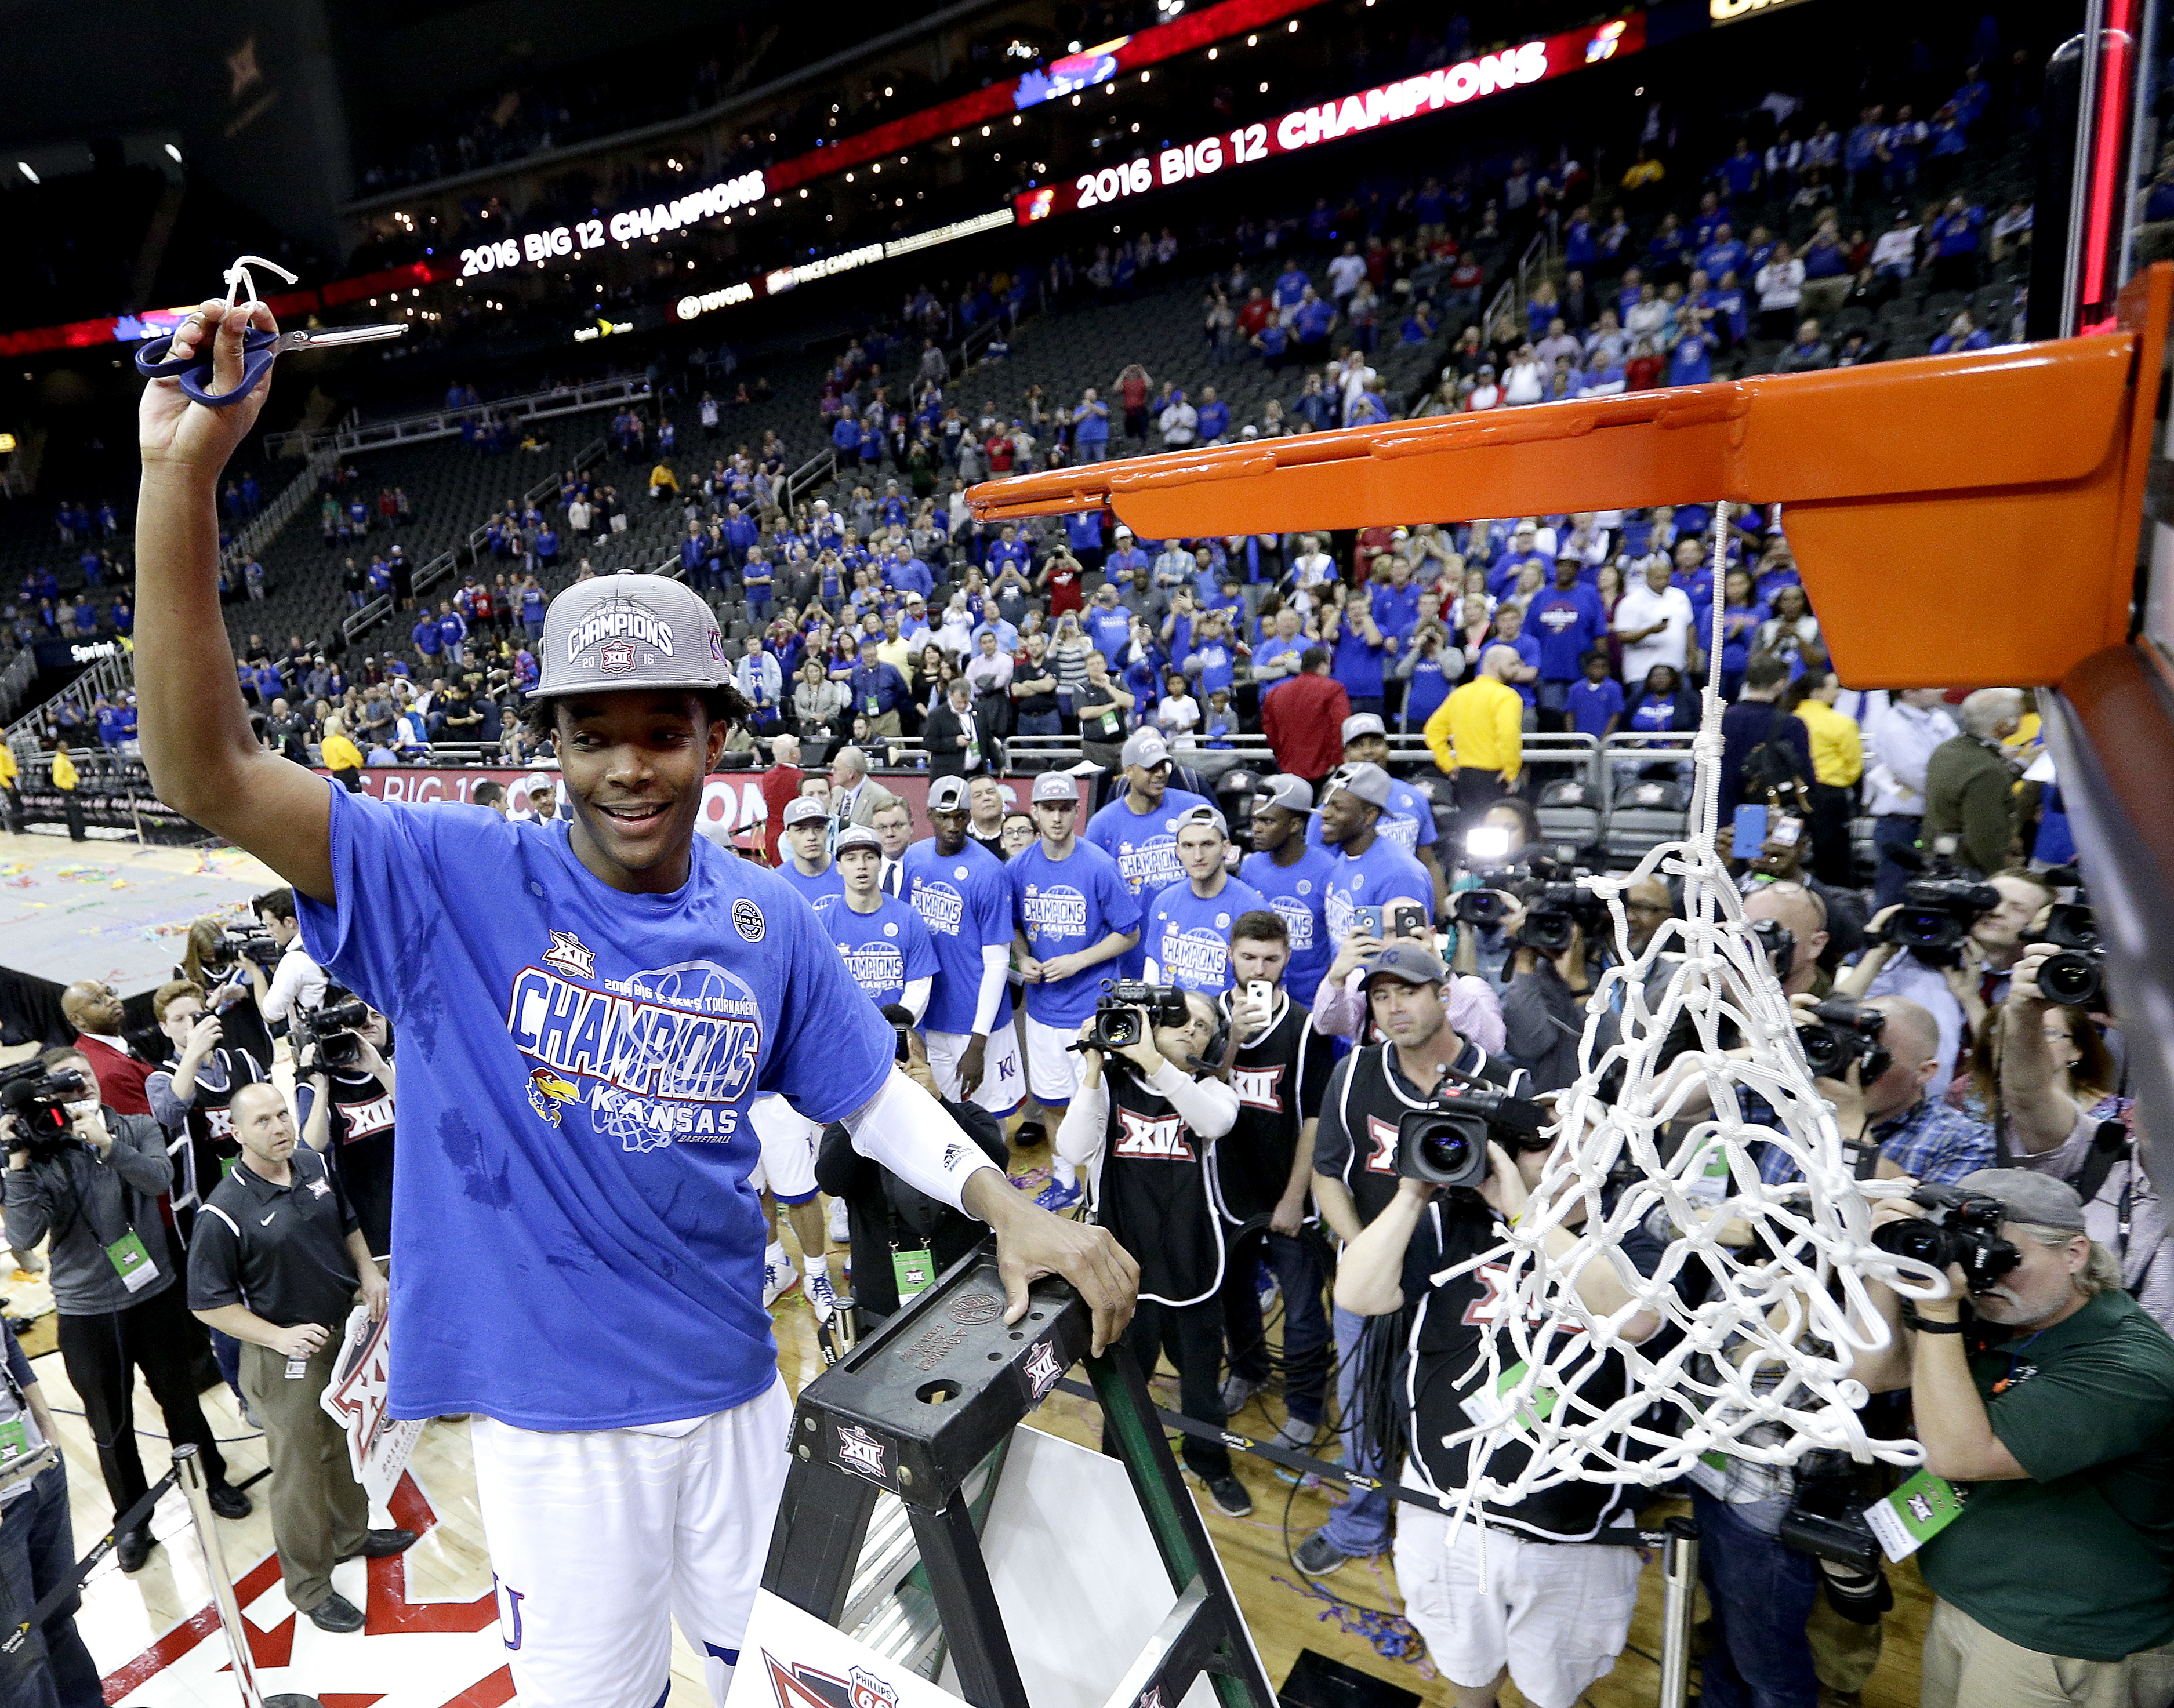 Kansas' Devonte' Graham cuts a piece of the net after winning an NCAA college basketball game against West Virginia to win the Big 12 conference tournament Saturday, March 12, 2016, in Kansas City, Mo. (AP Photo/Charlie Riedel)